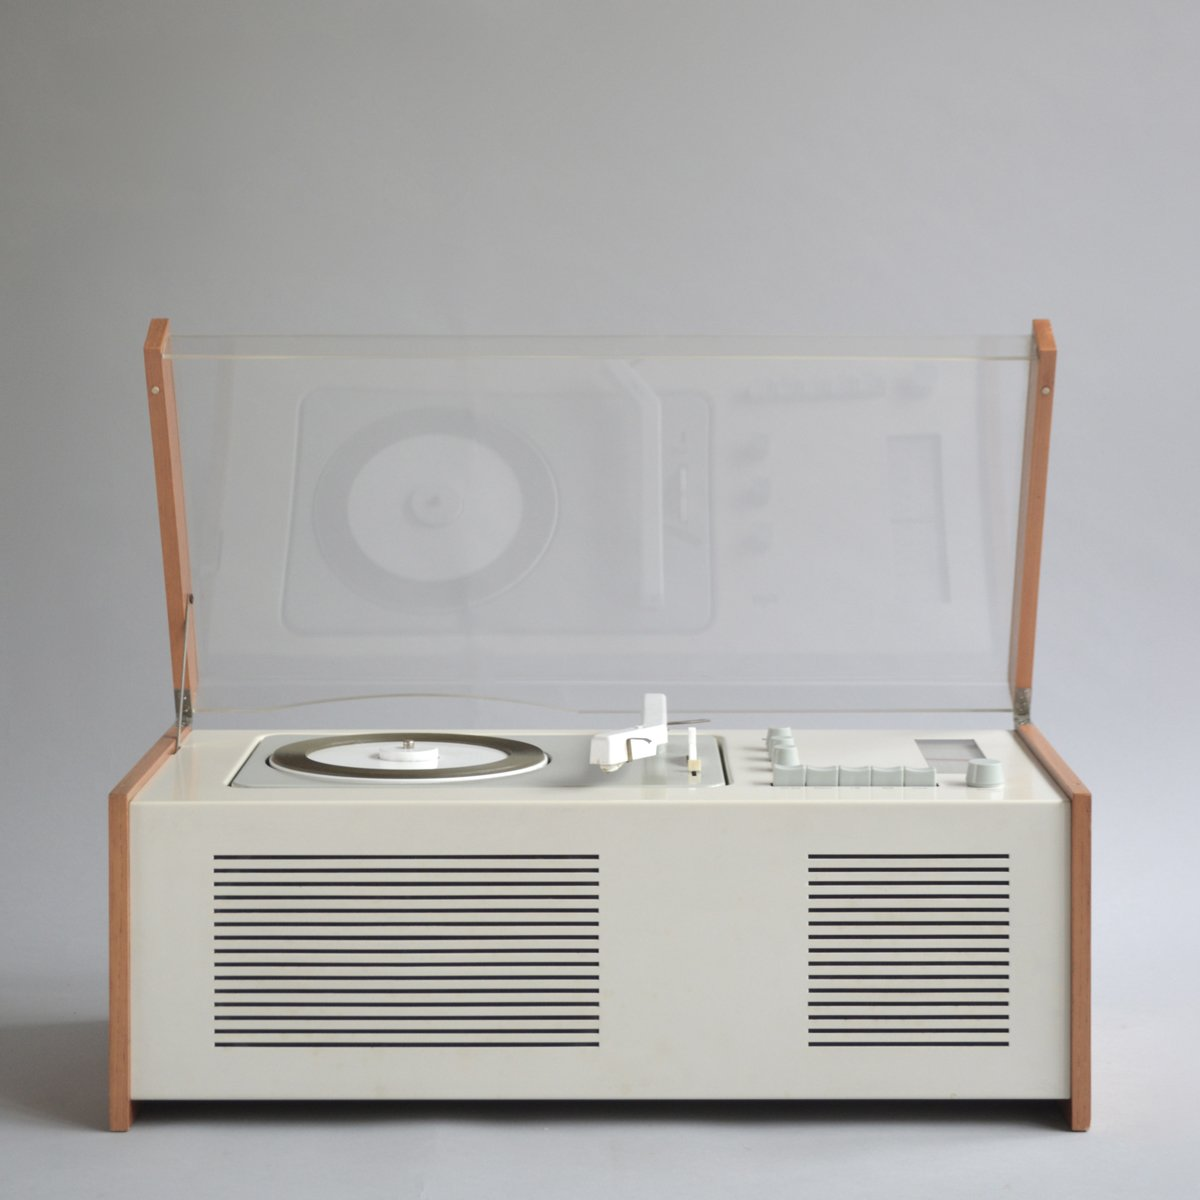 Deiter Rams-designed SK 5 phonosuper, perhaps the most iconic audio design in the Braun archives.  Dieter Rams is the man! by Nick Dine from Shop the Vintage Braun Catalog from Your Web Browser